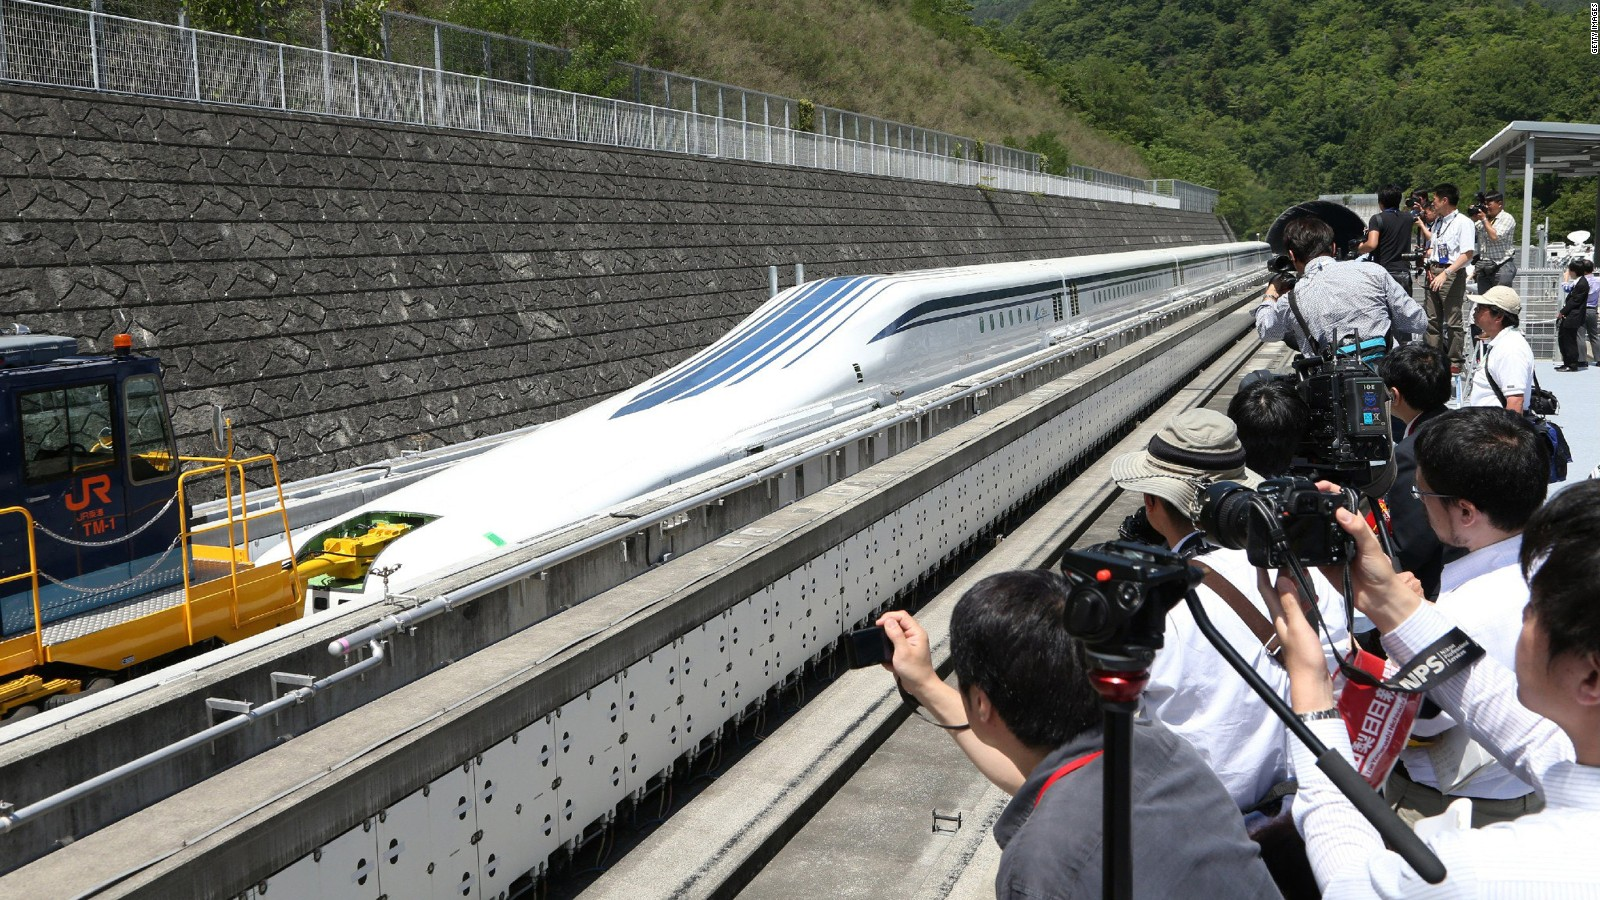 World's fastest train takes you a mile in 10 seconds